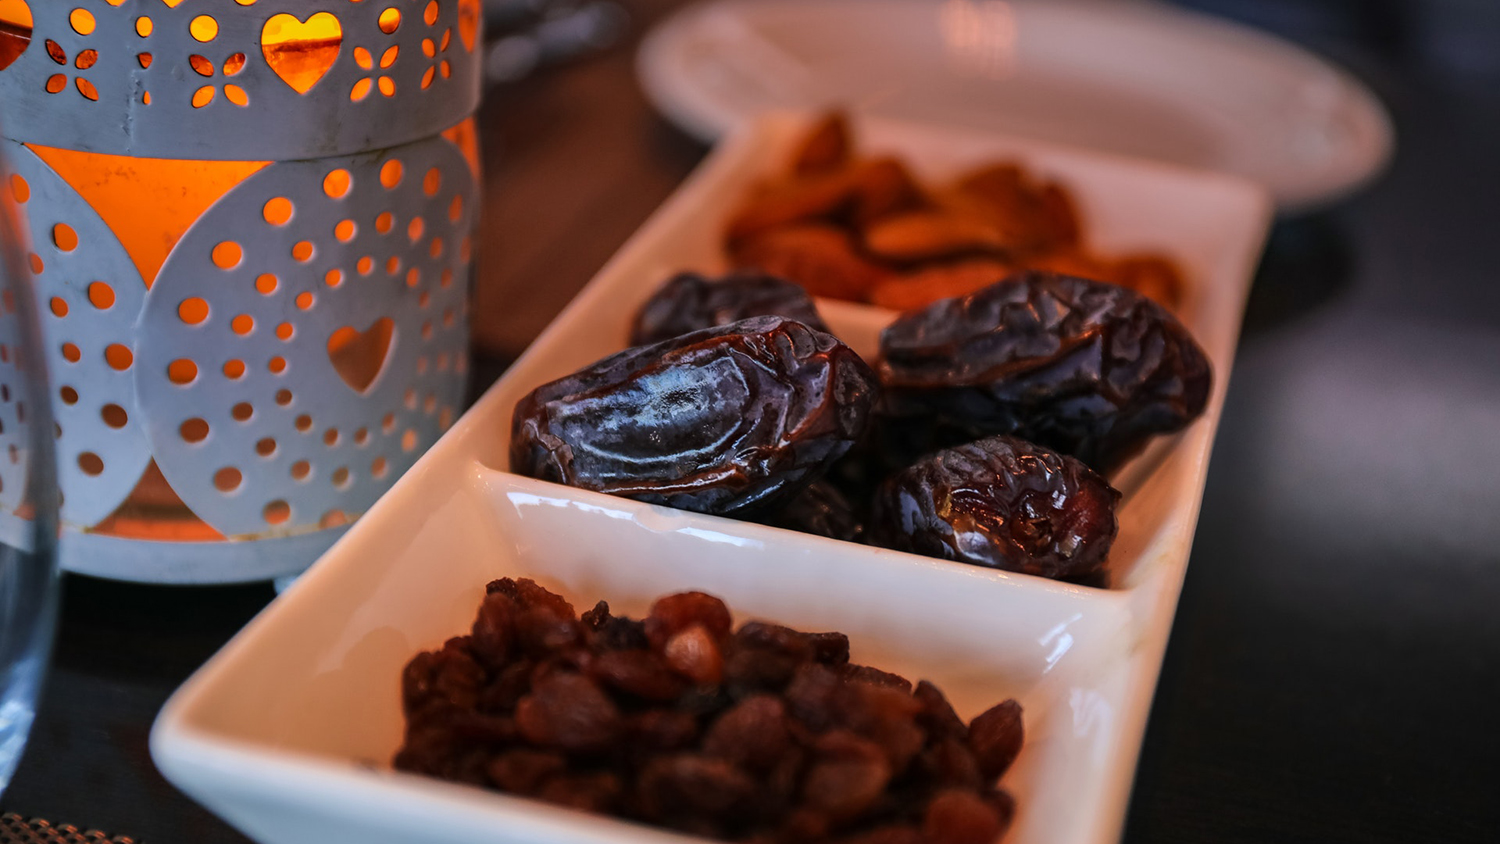 Raisins and dates for breaking the fast on Ramadan